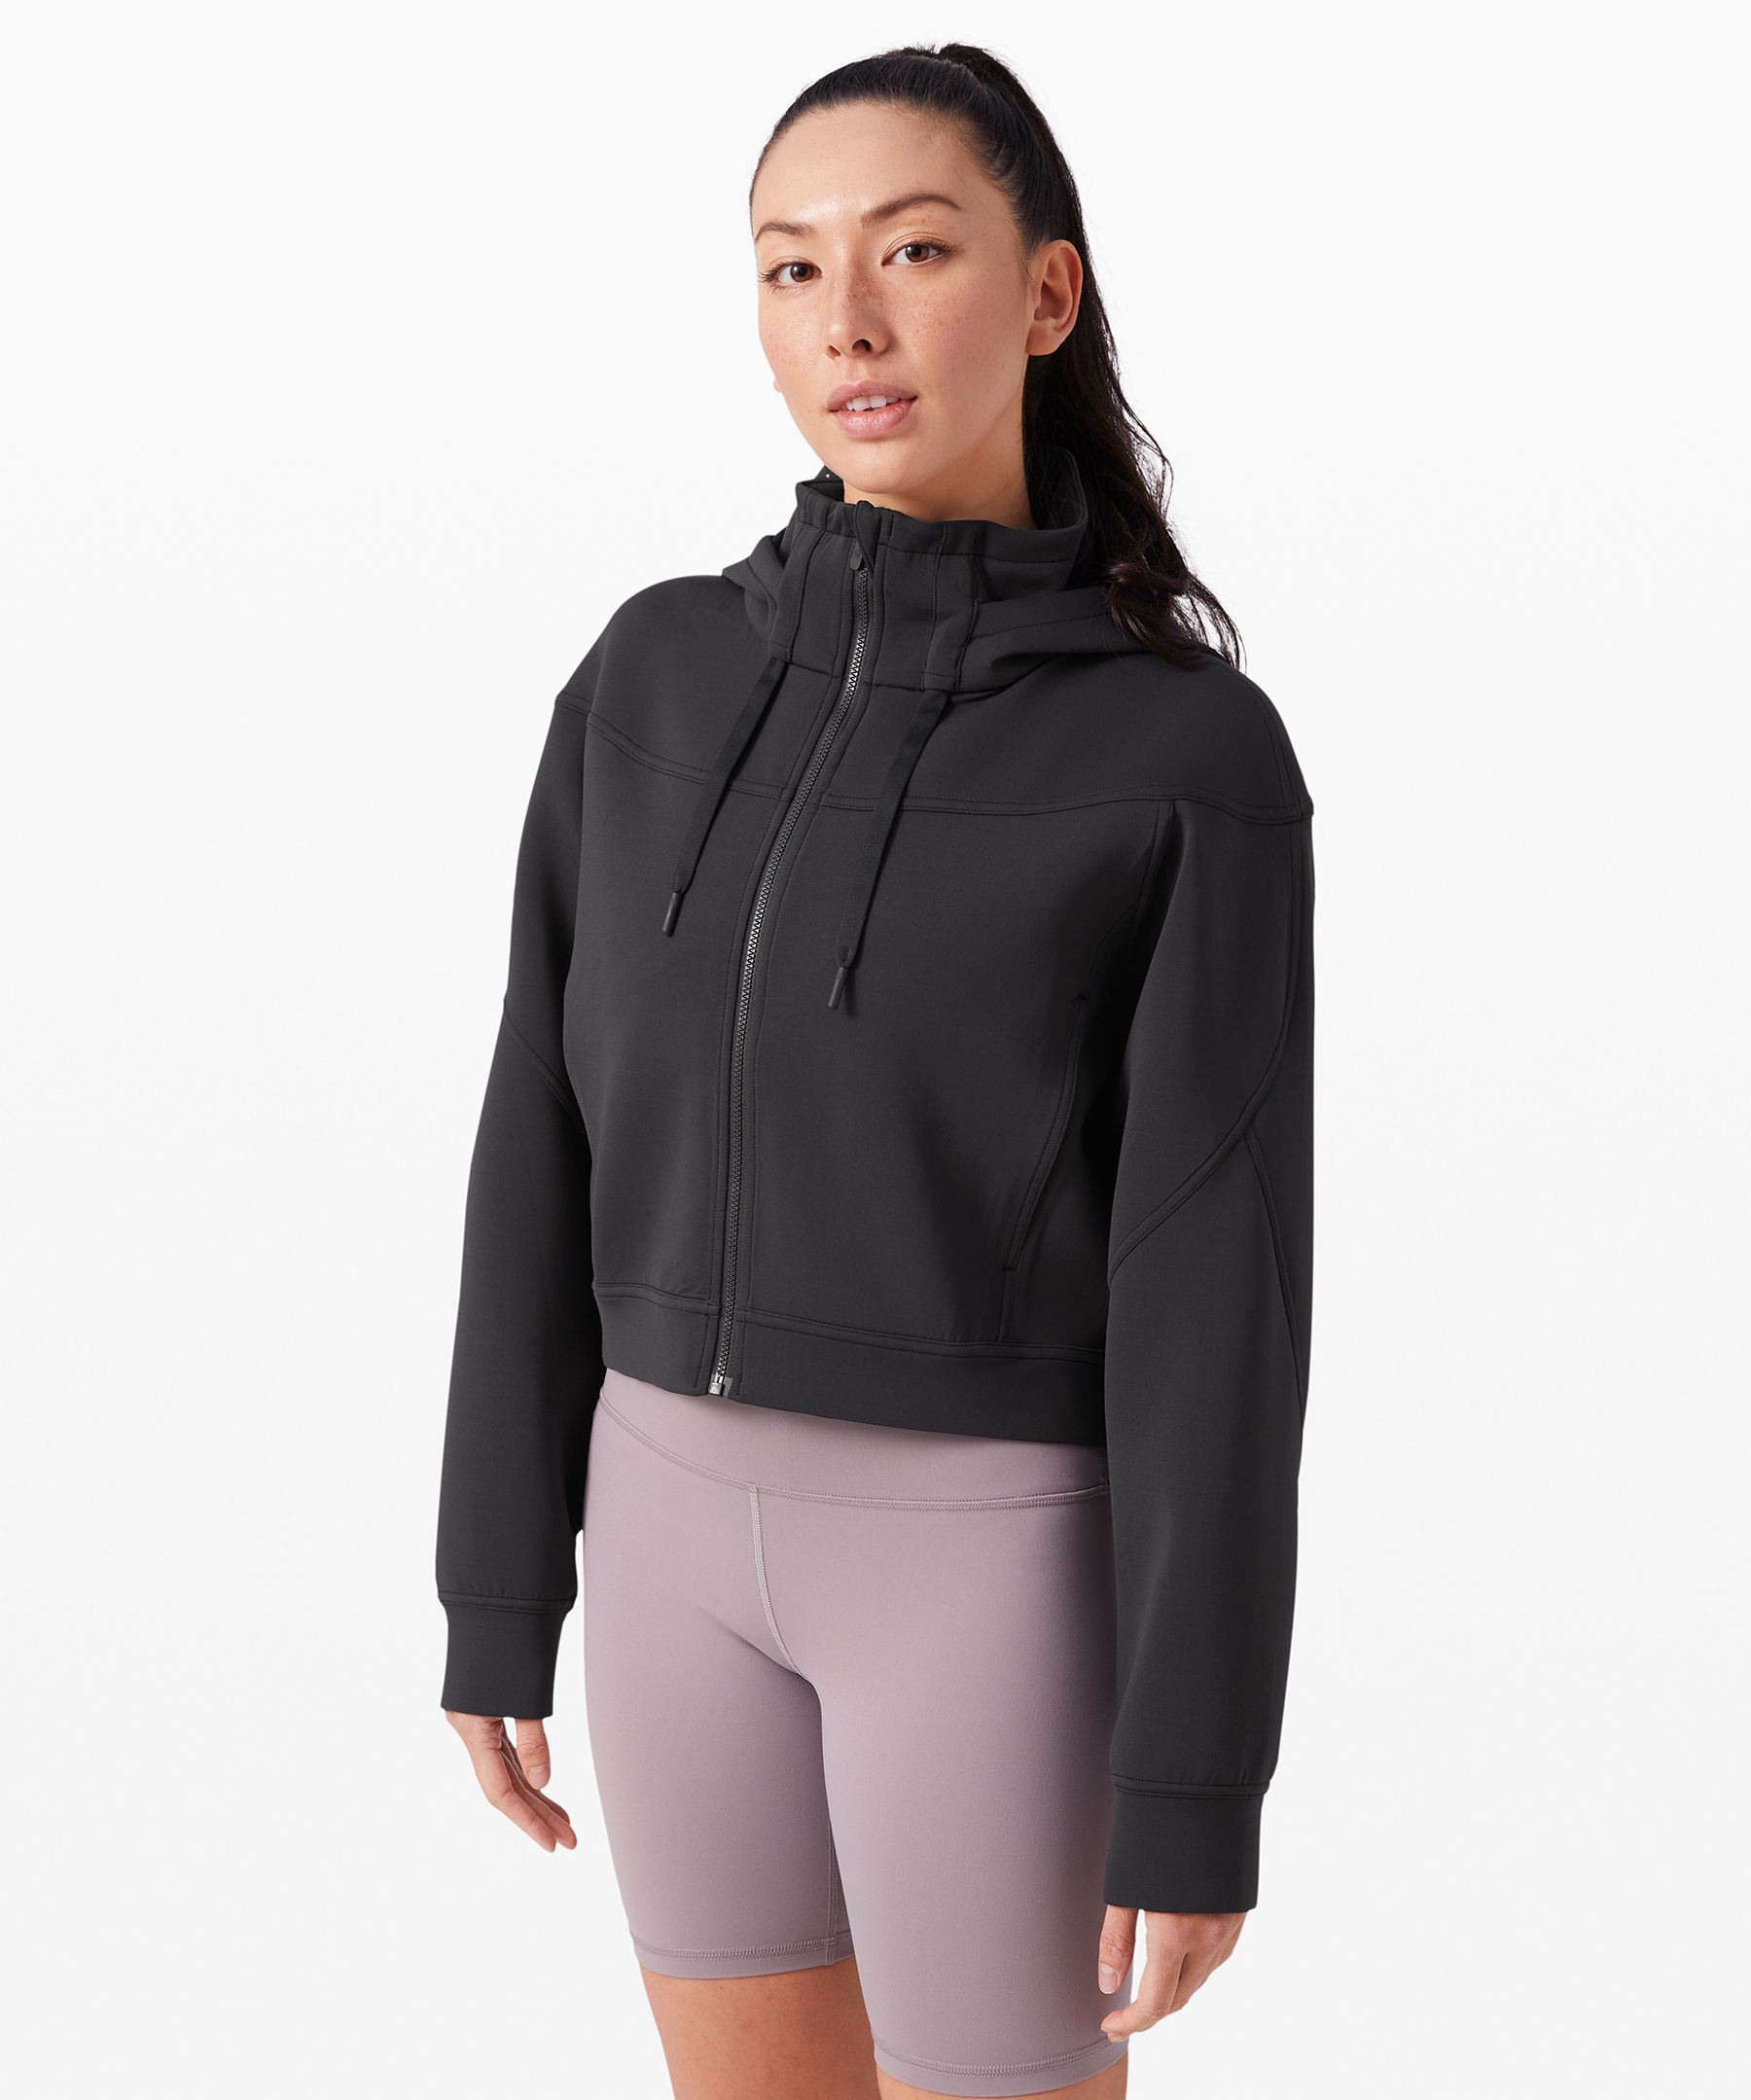 Gear up for your warm-ups and  keep your cool-downs looking  fresh. Designed in  sweat-wicking Spacer fabric,  this full zip hoodie is your  new best training partner.